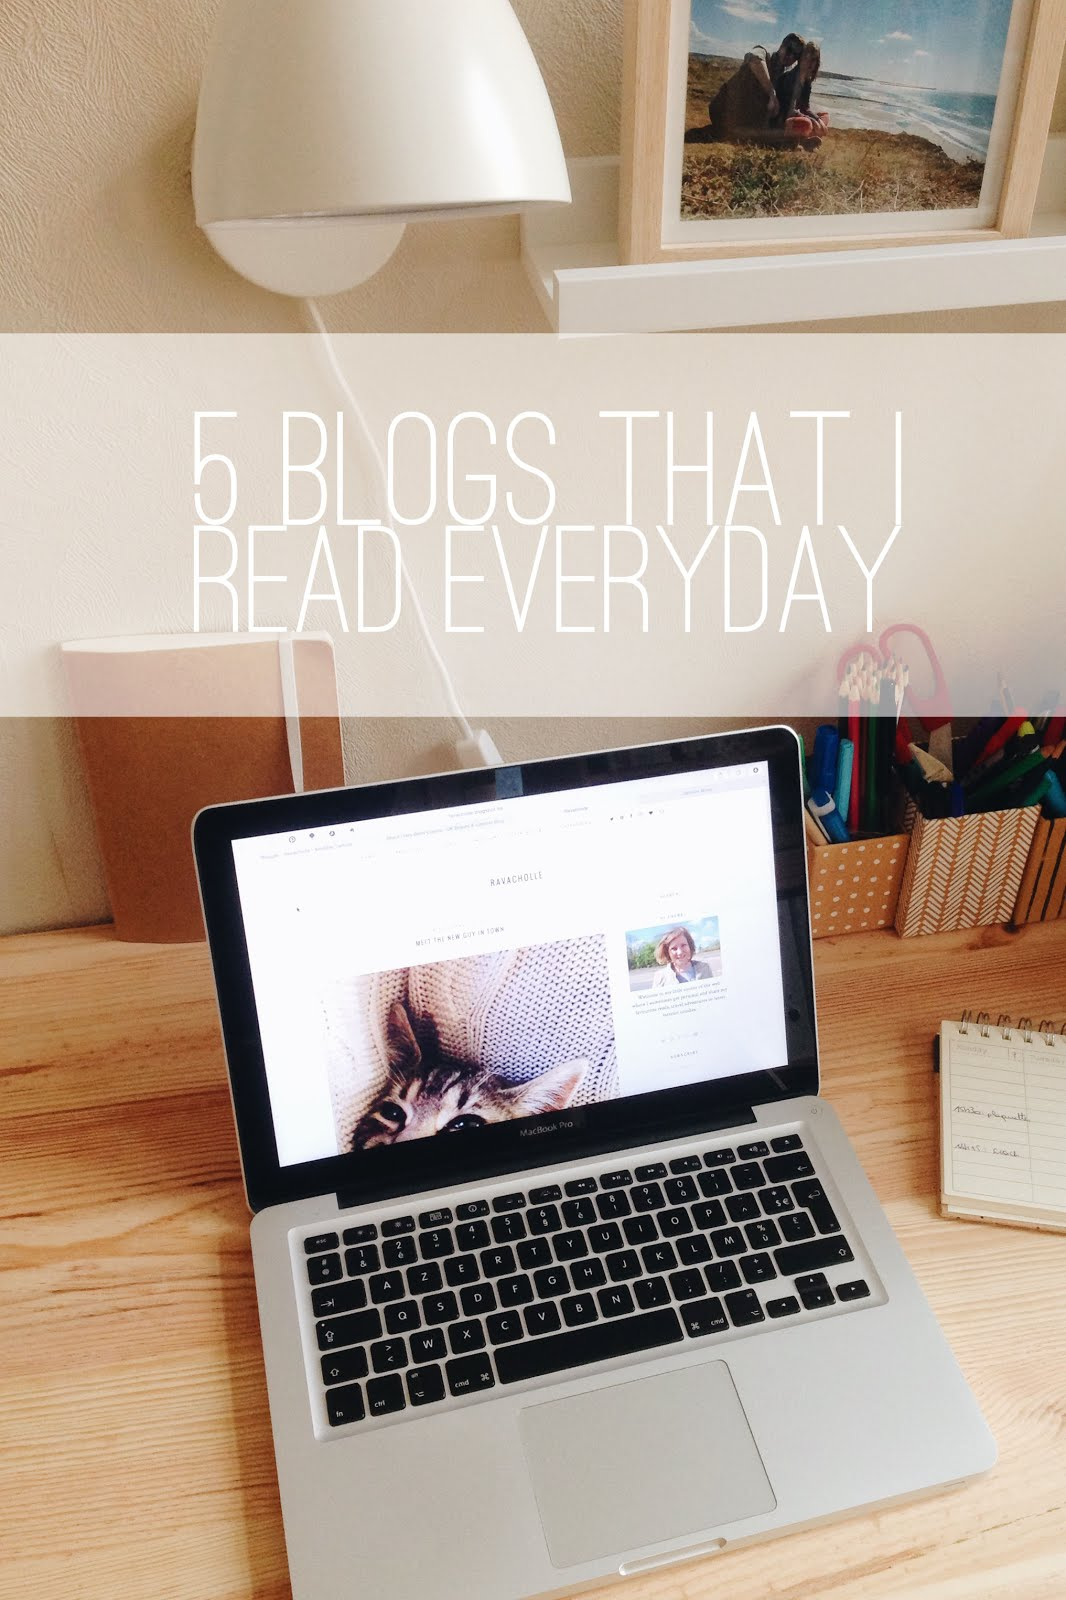 5 blogs I read everyday, office wooden desk, mcbook pro on a wooden desk, laptop, ravacholle belgium based lifestyle blog